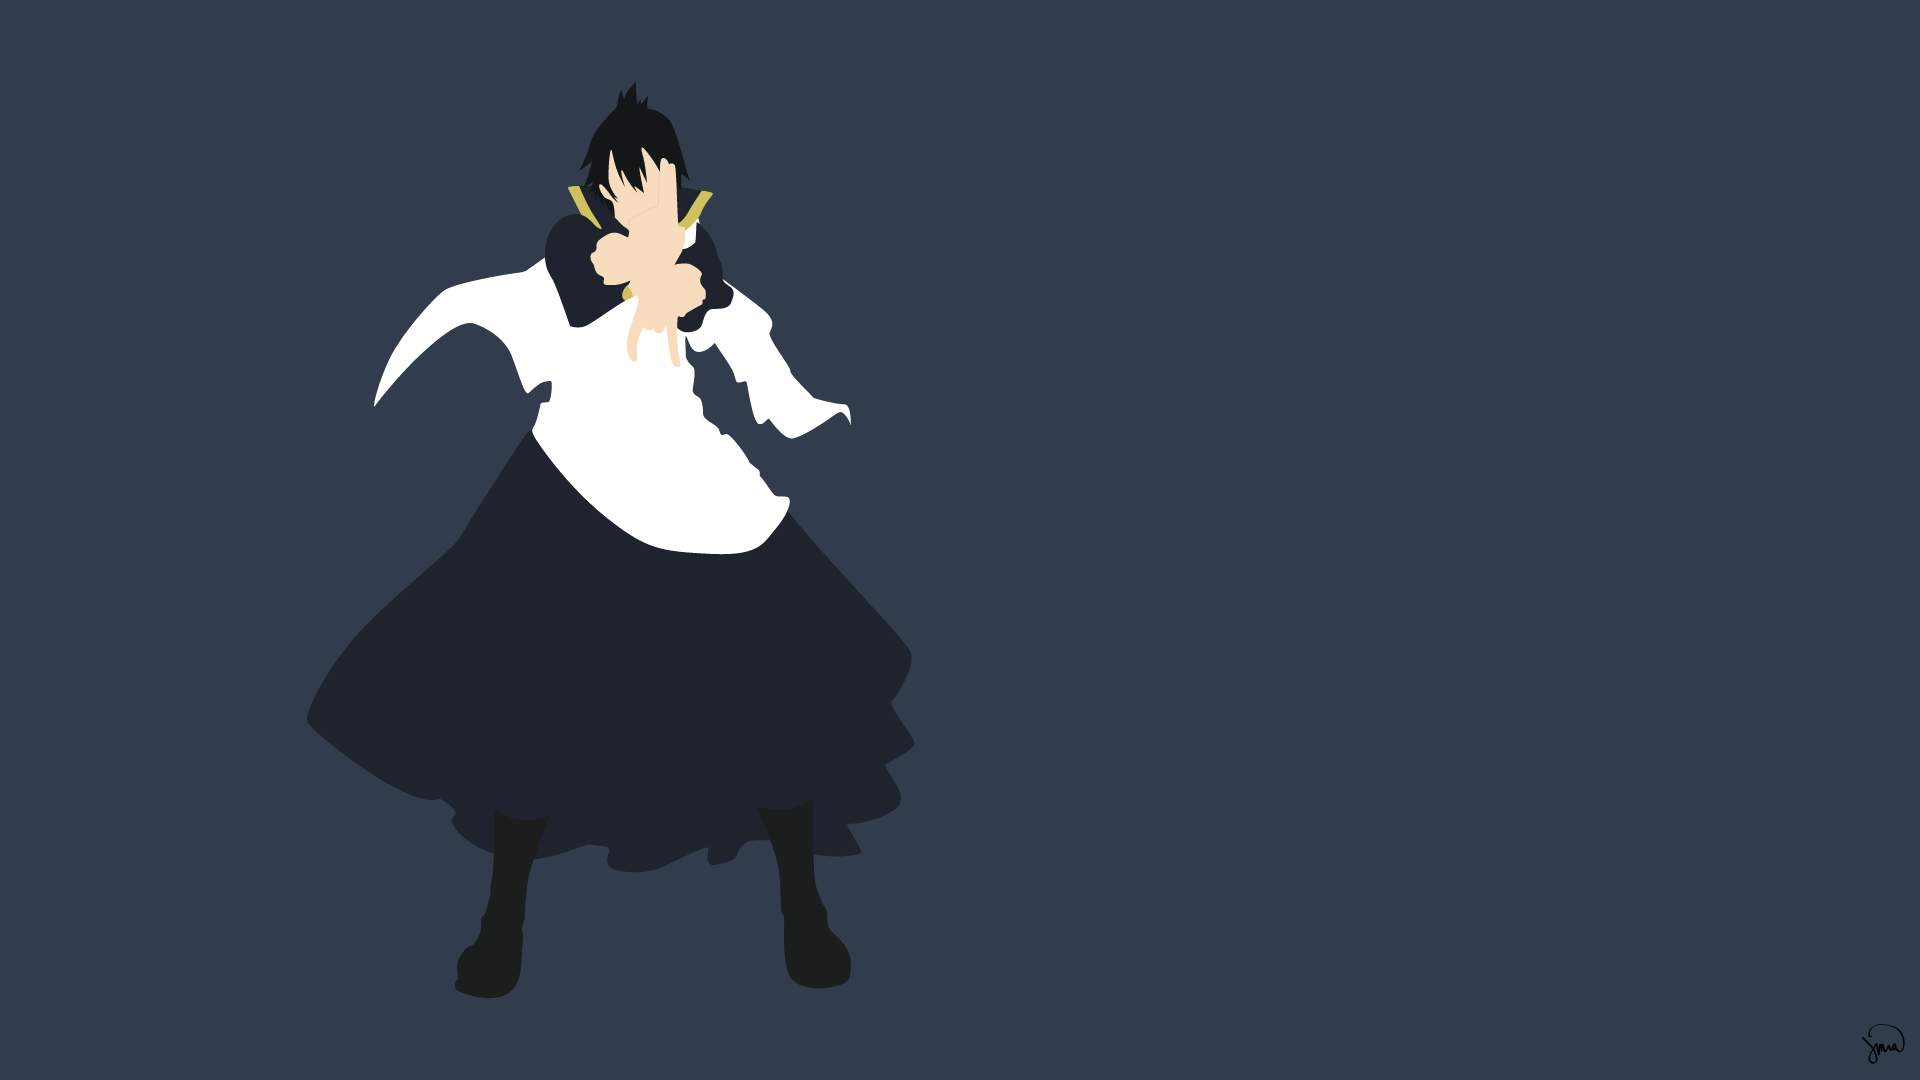 Fullmetal Alchemist Wallpaper Quotes Zeref Dragneel Fairy Tail Minimalistic Wallpaper By